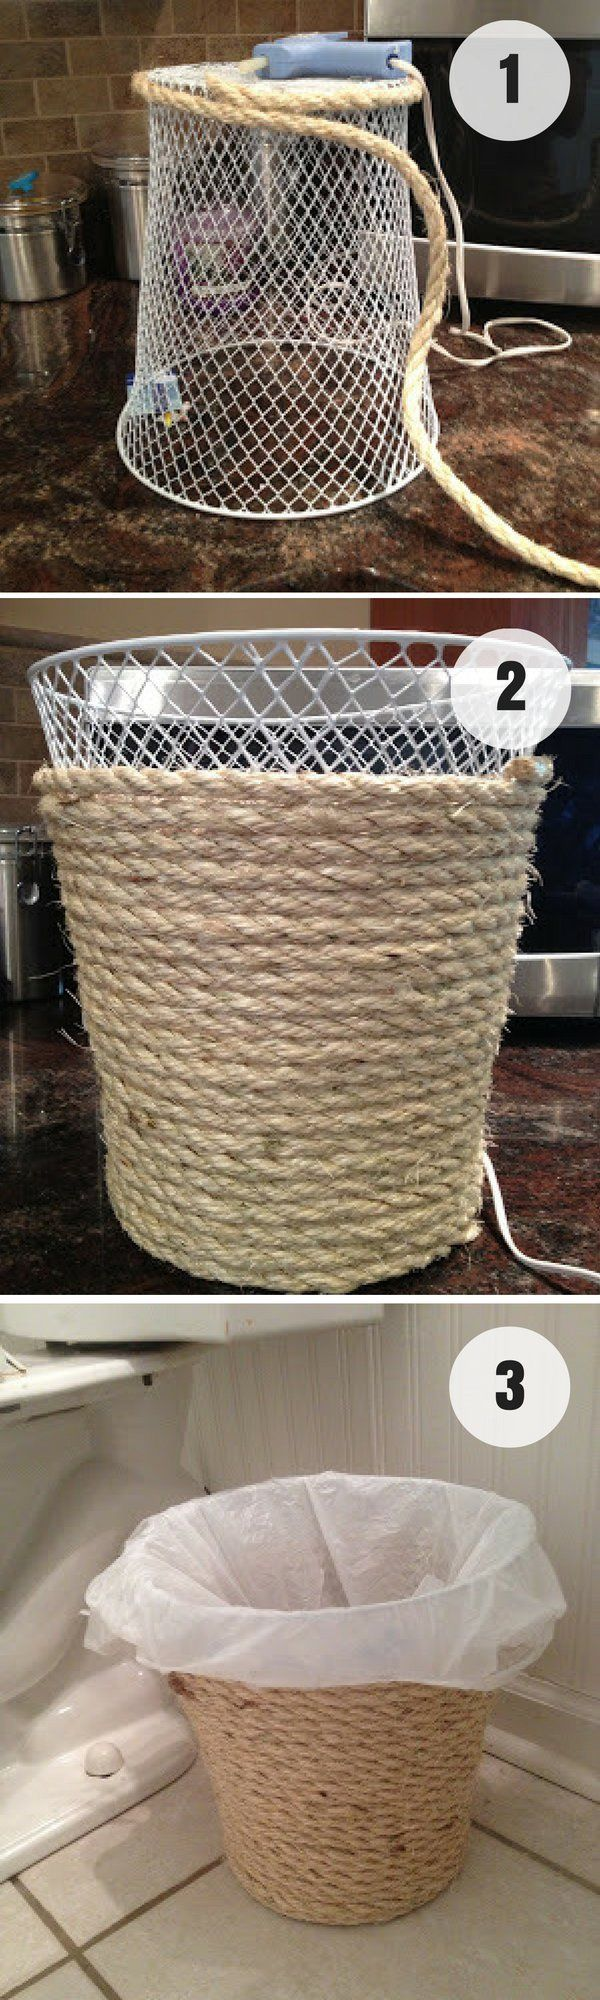 top 25 best bathroom trash cans ideas on pinterest trash can